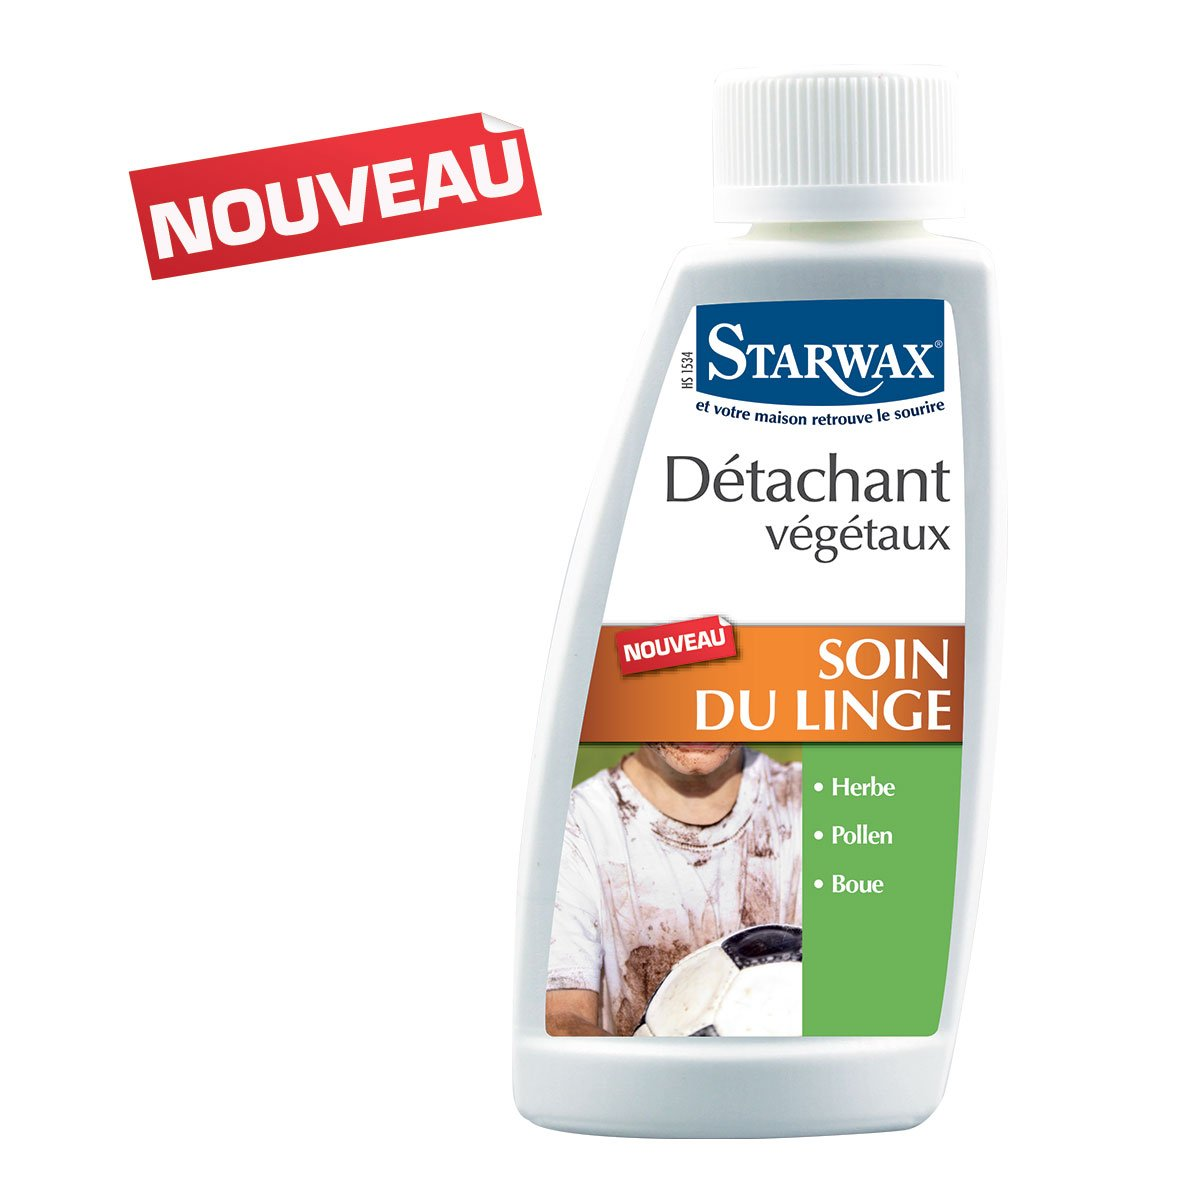 Detachant vegetaux